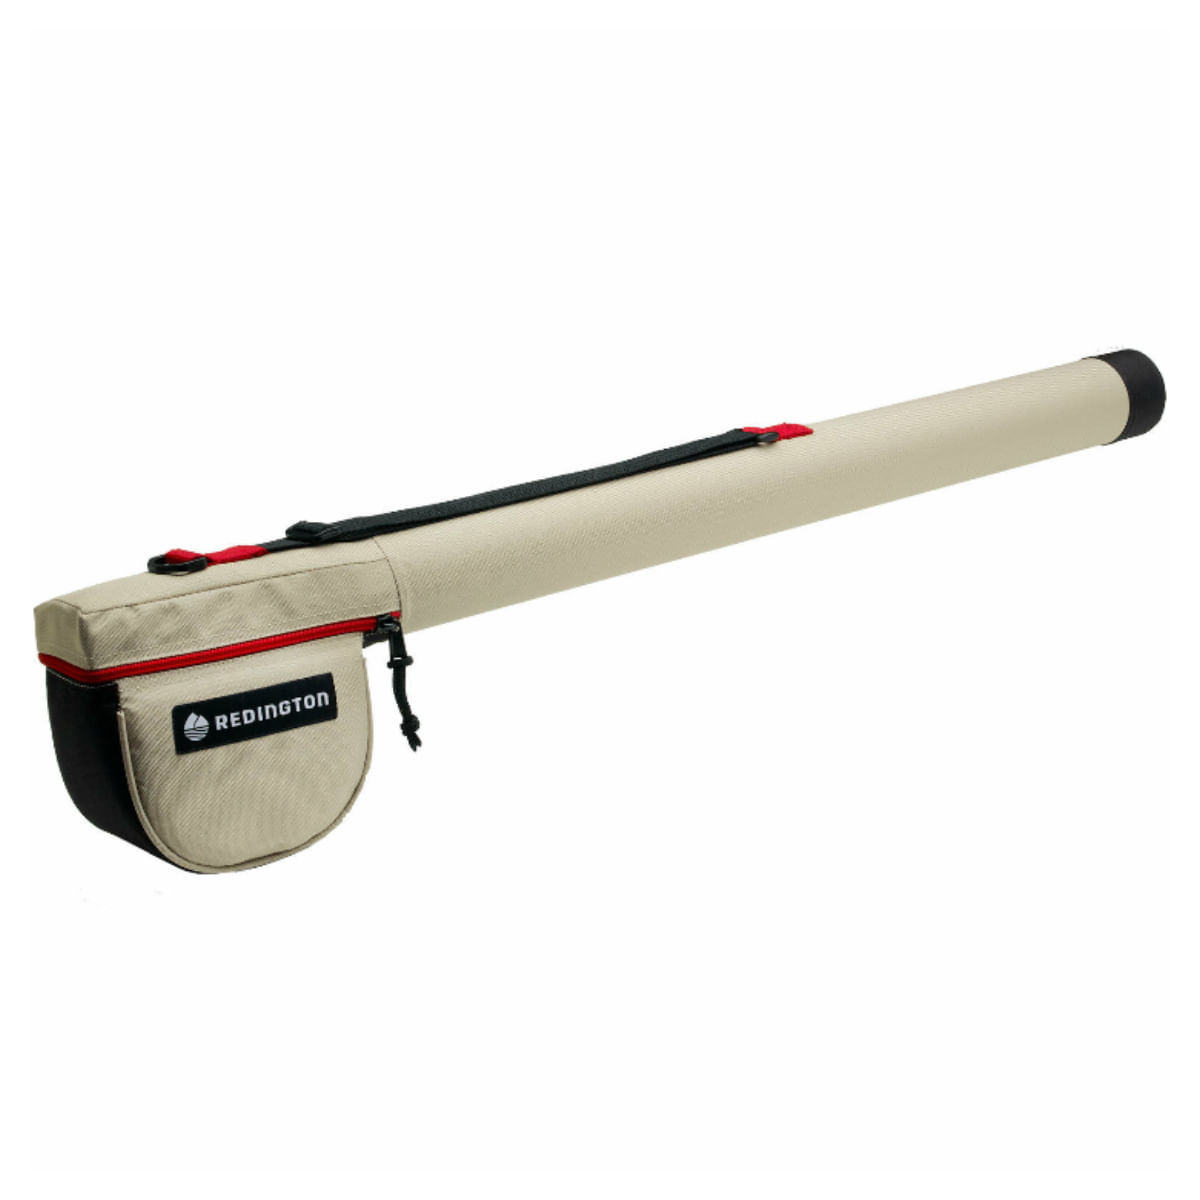 Redington Single Rod Travel Case